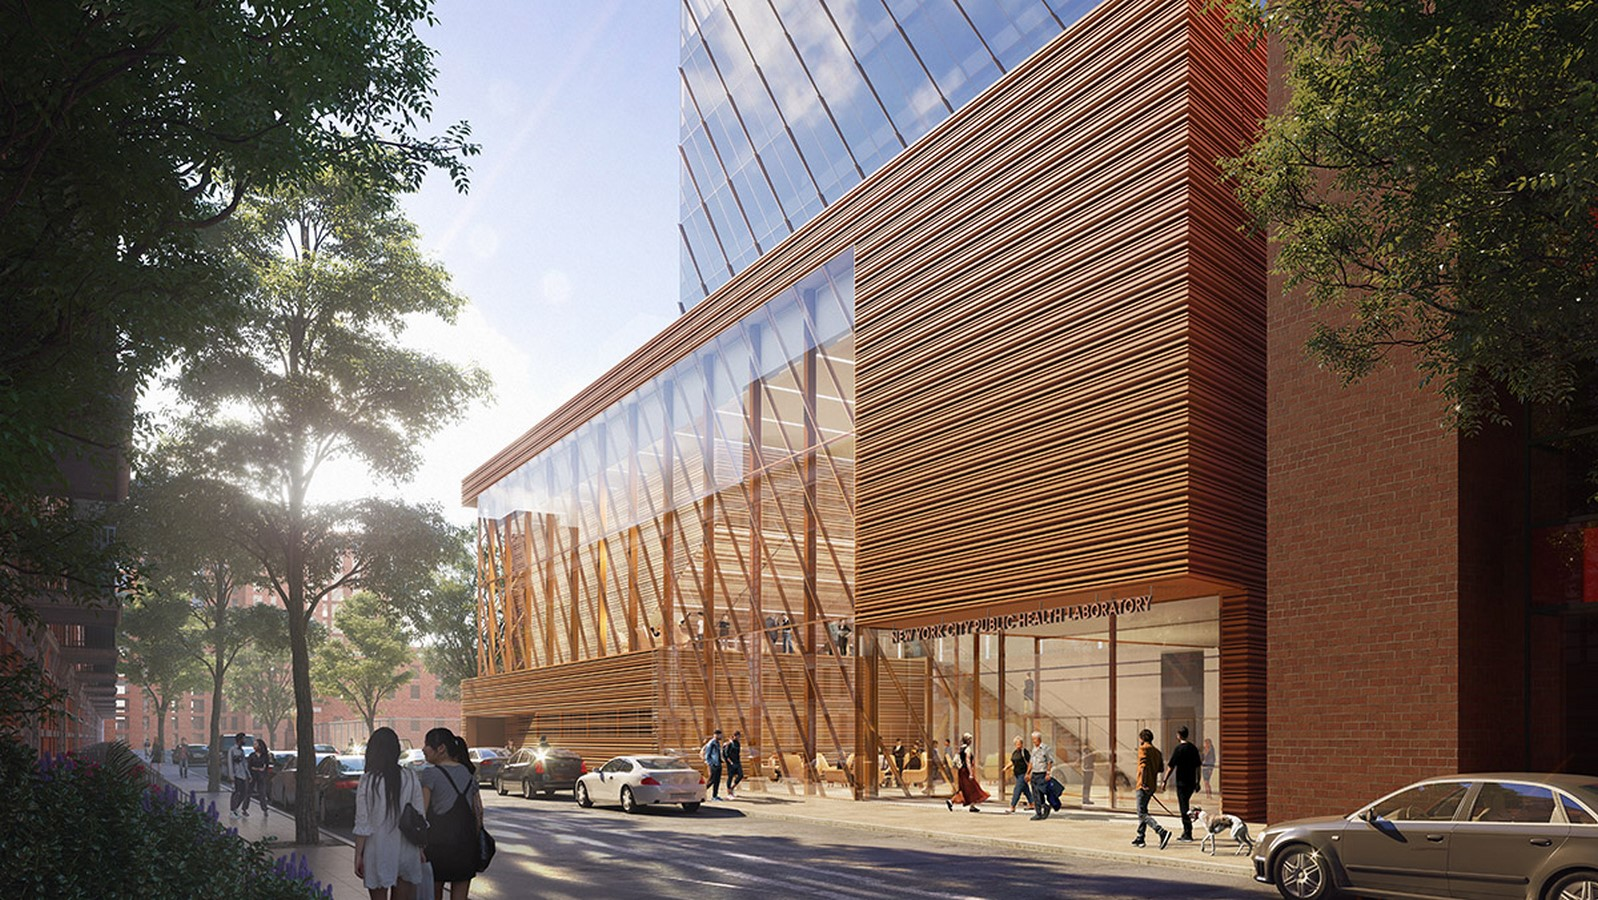 New Public Health Laboratory in New York designed by SOM Sheet4